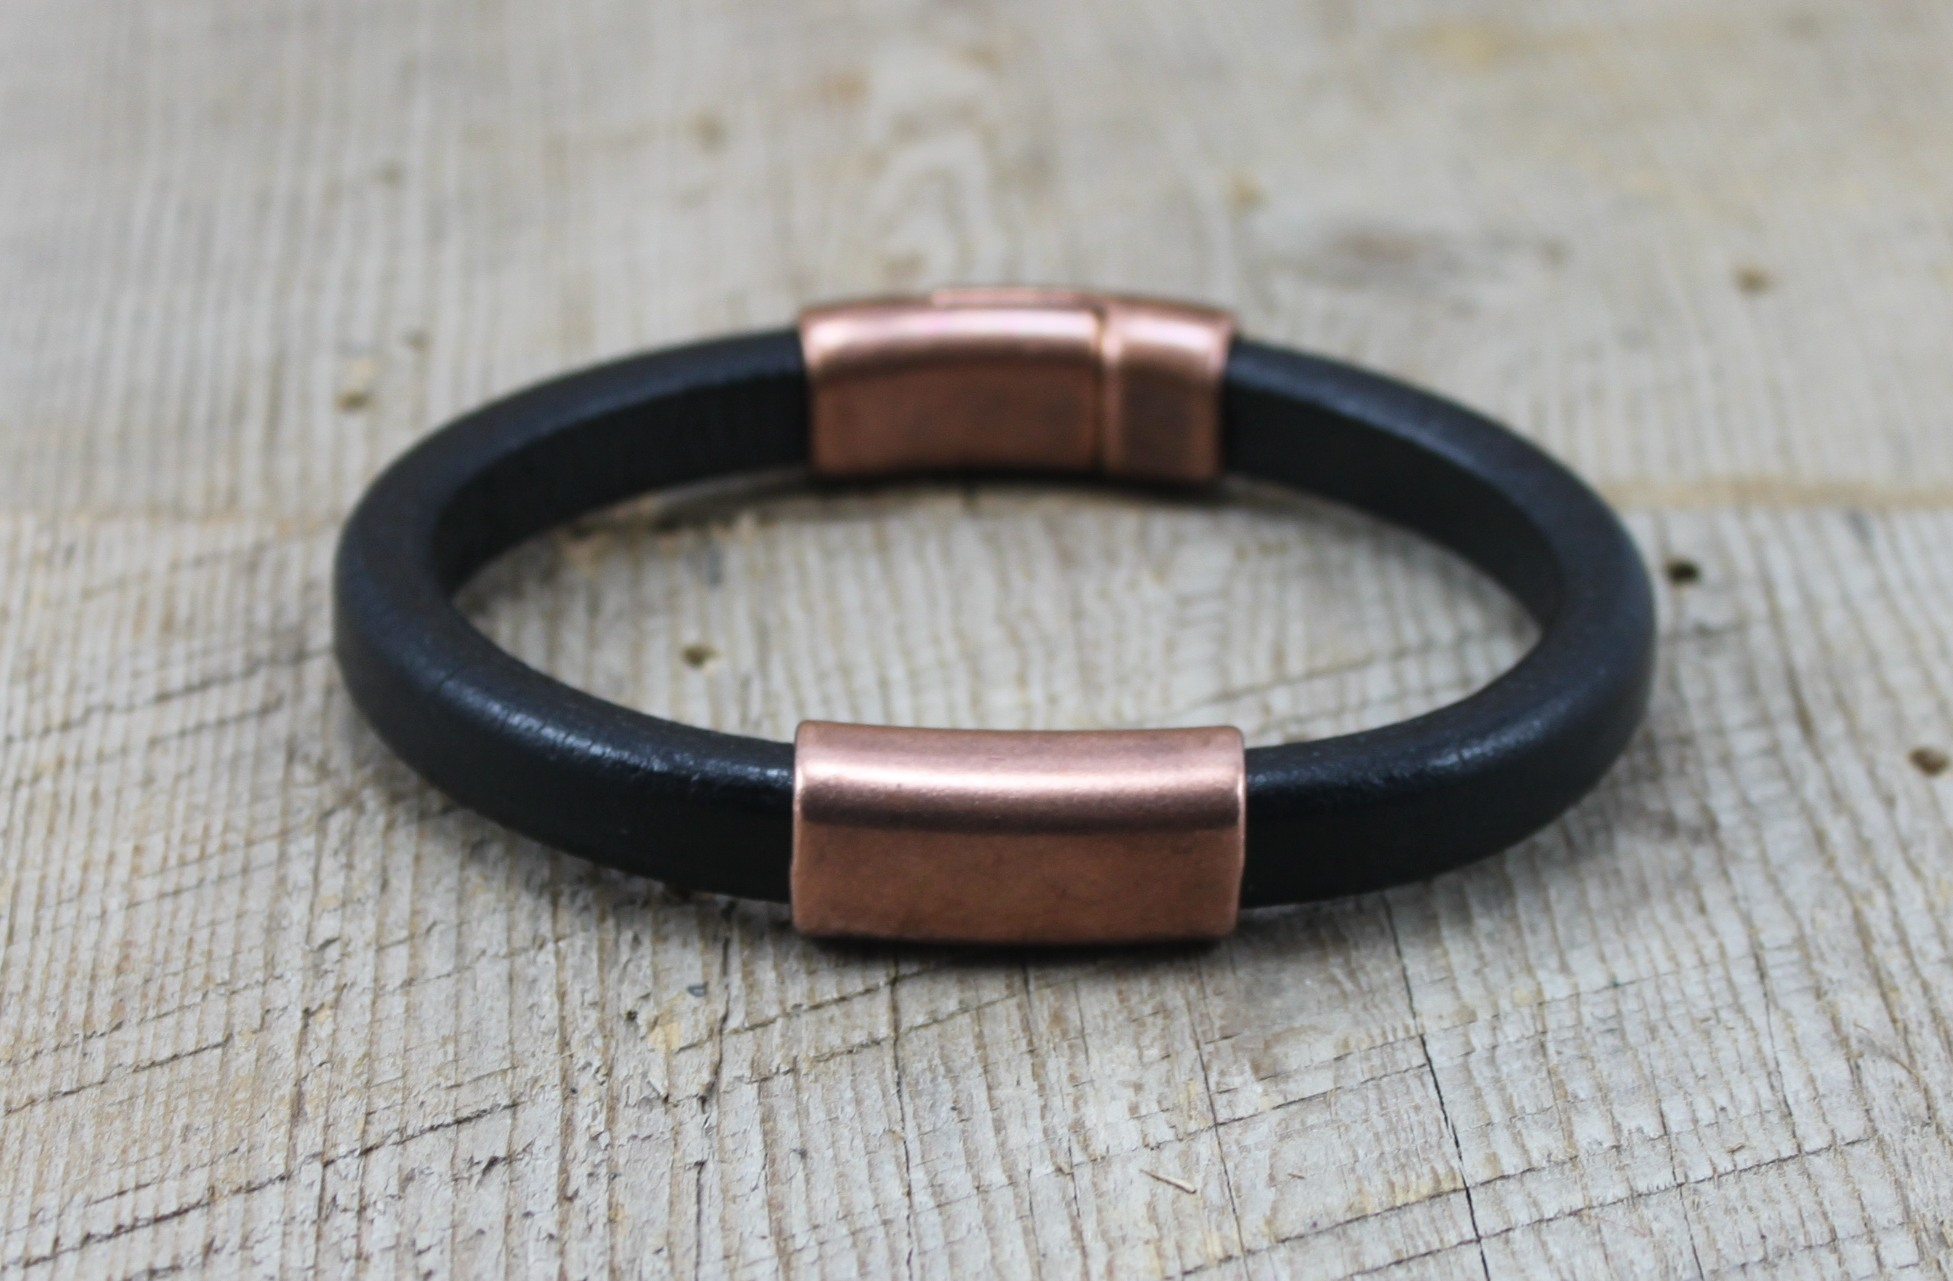 Copper Black Leather Men S Bracelet From Sariblue Deep Thick Oval With Strong Magnetic Clasp